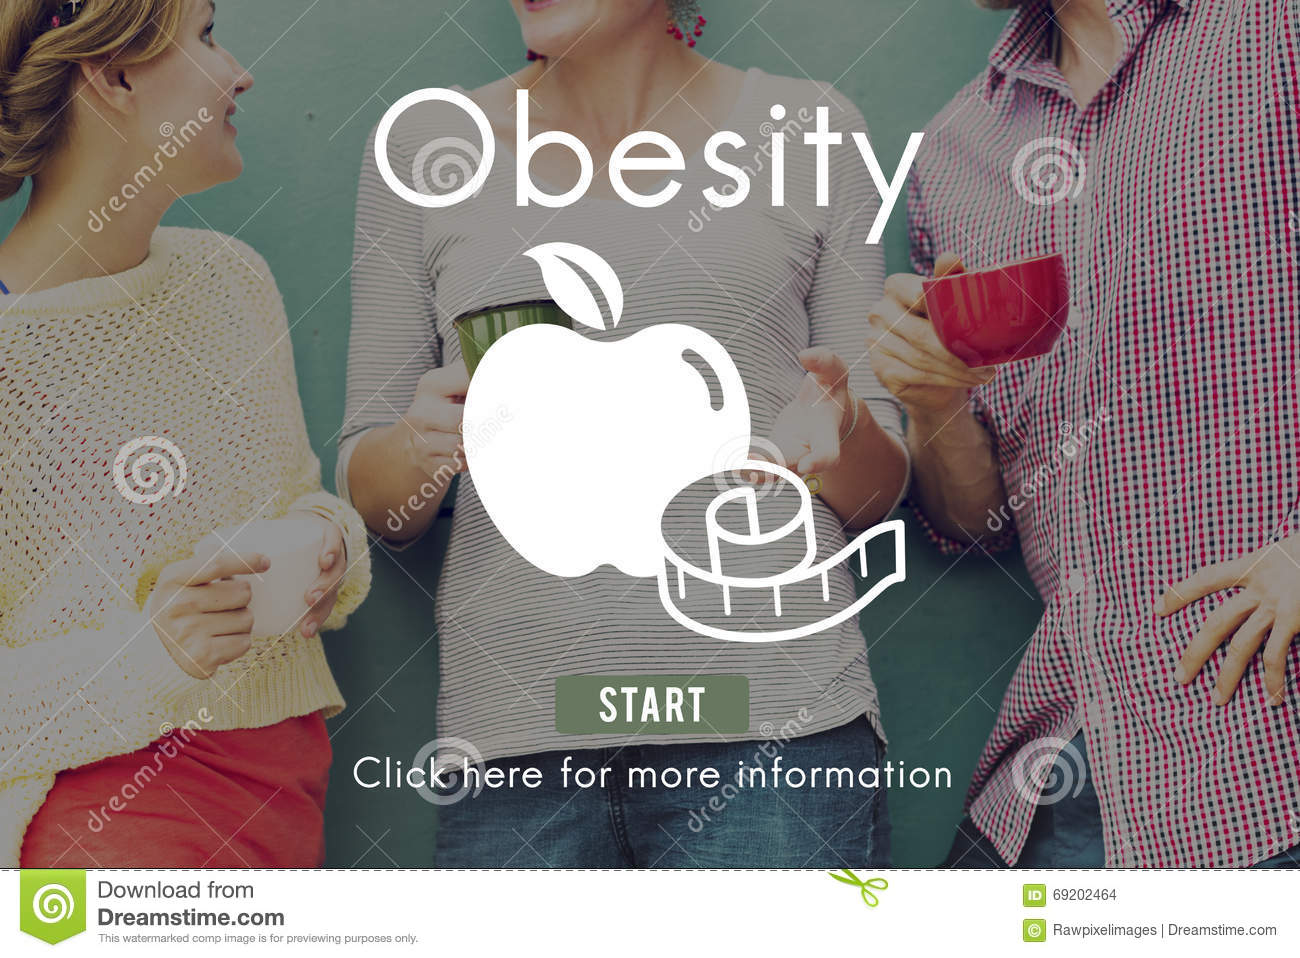 Unhealthy Diets and Obesity